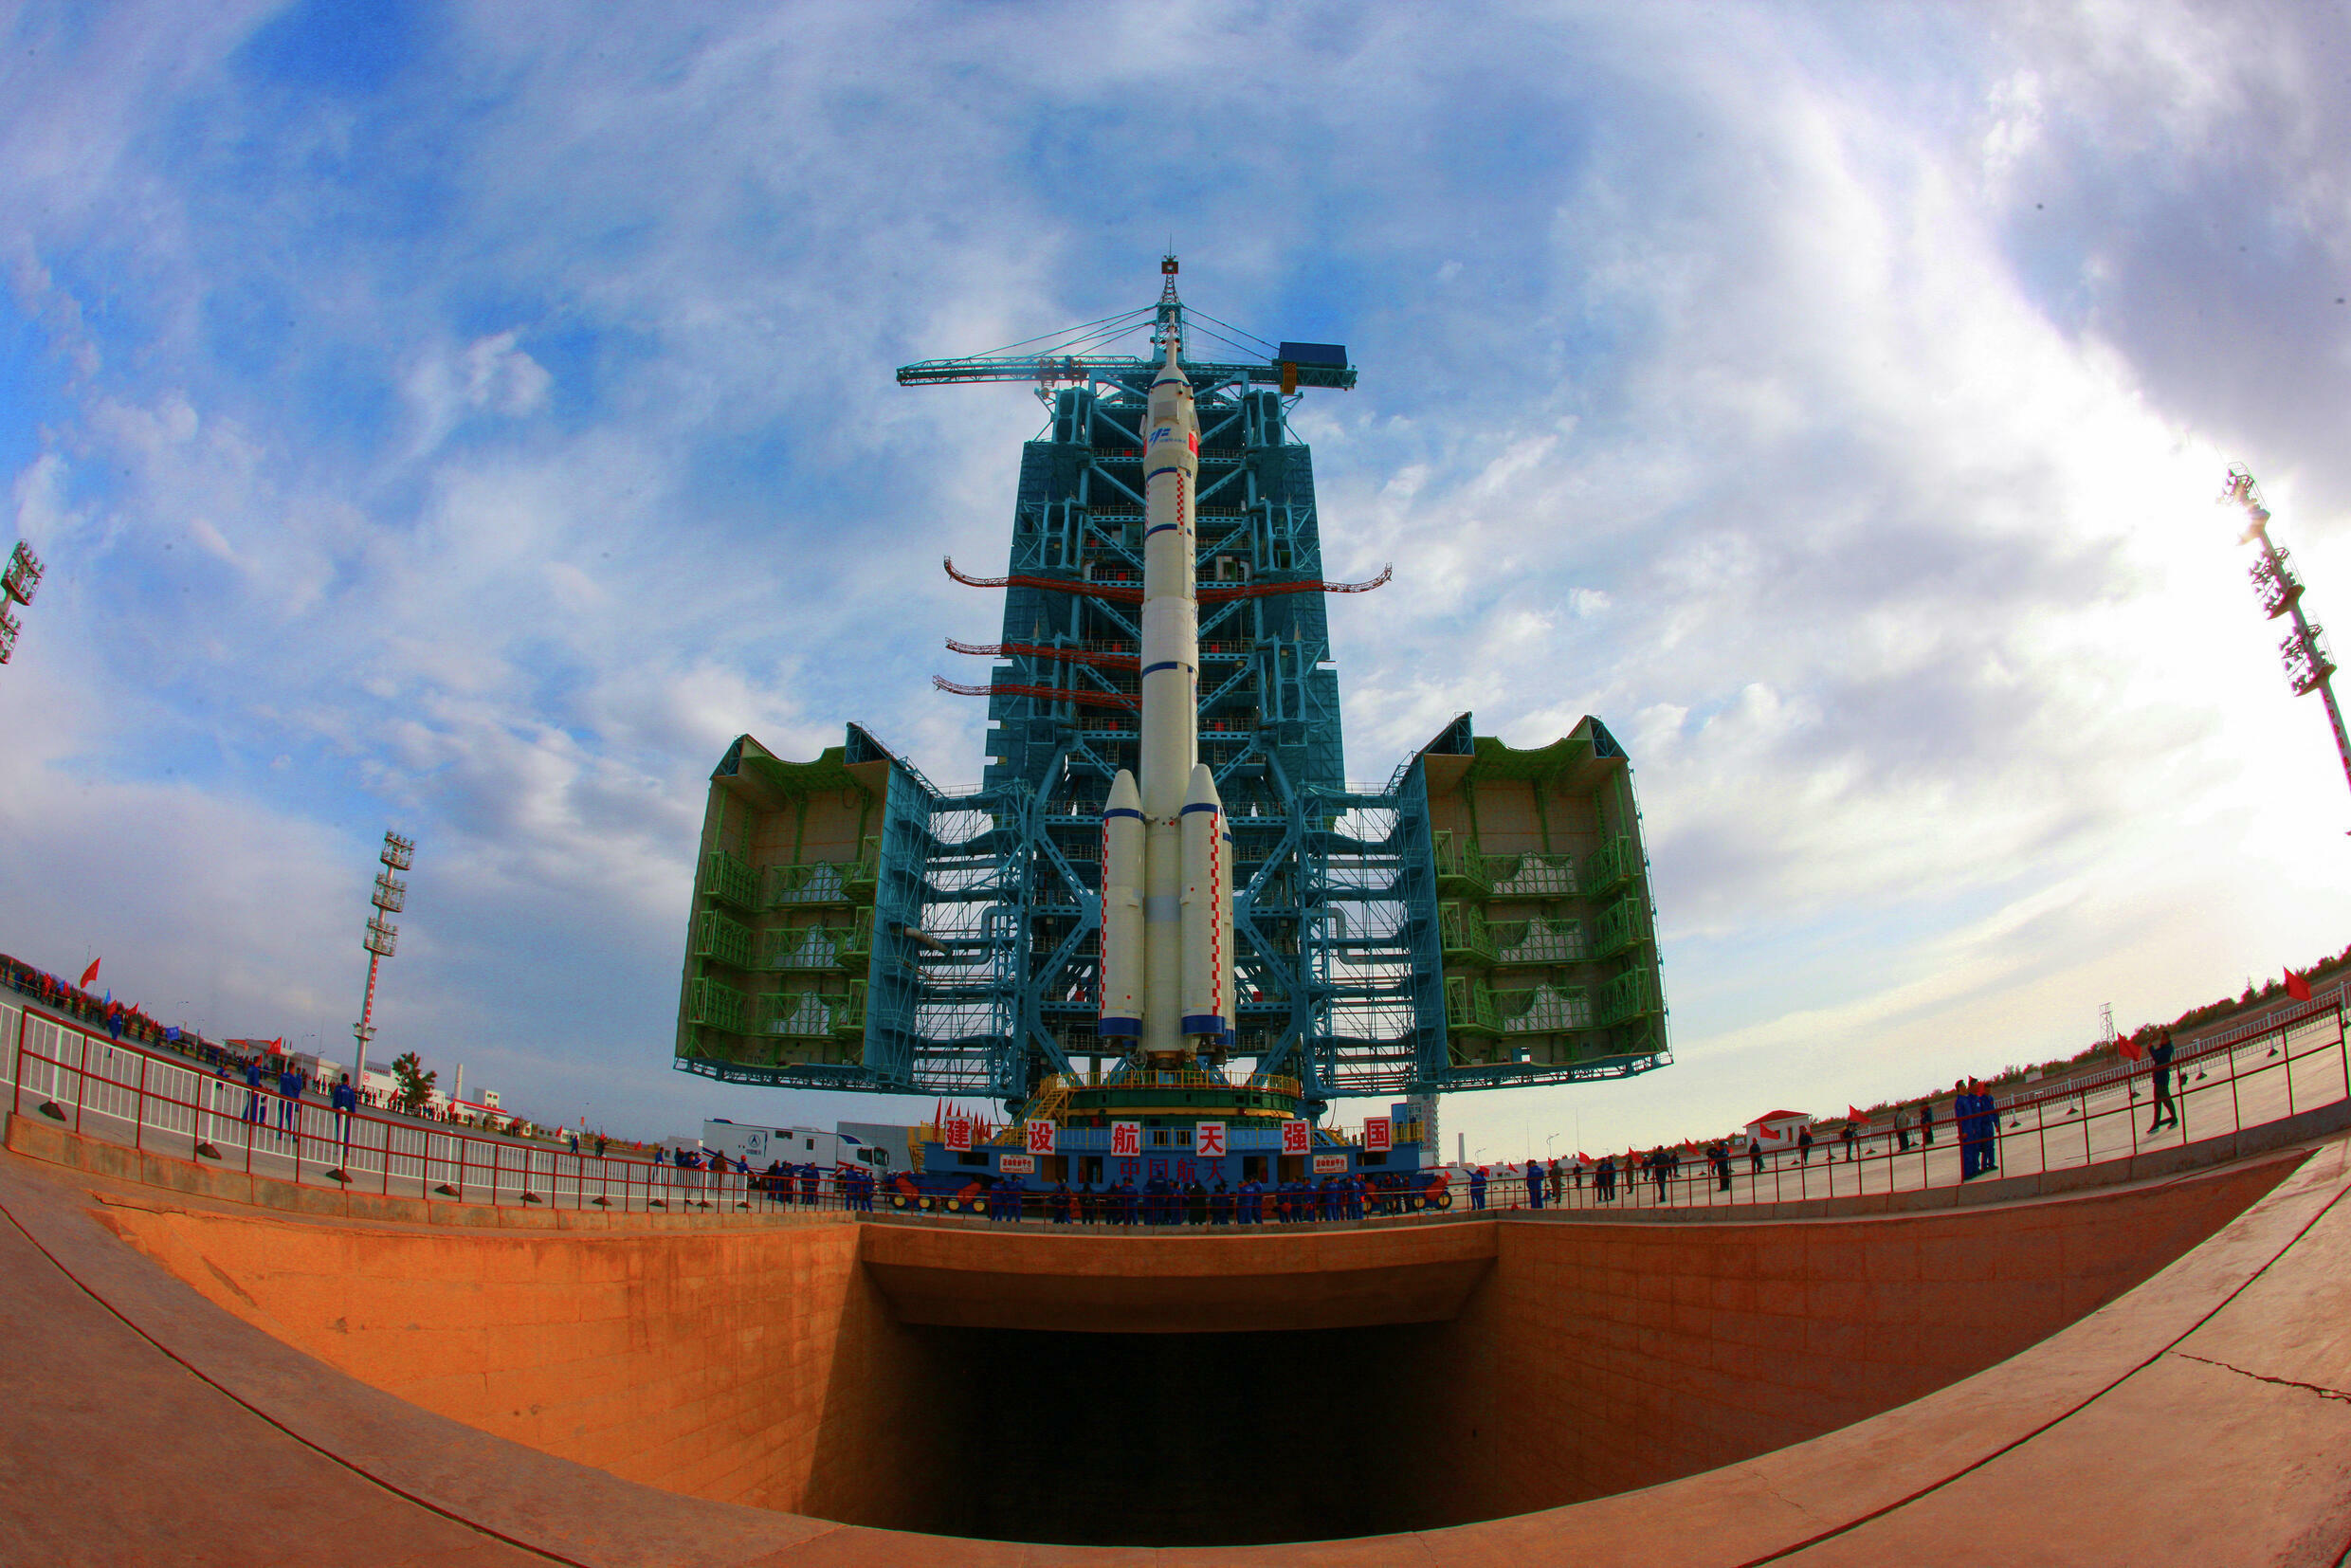 A Long March-2F carrier rocket, carrying the  Shenzhou-13 spacecraft that was launched by China on October 16, 2021, was transported days earlier to the launching area at the Jiuquan Satellite Launch Centre in the northwestern Gansu province